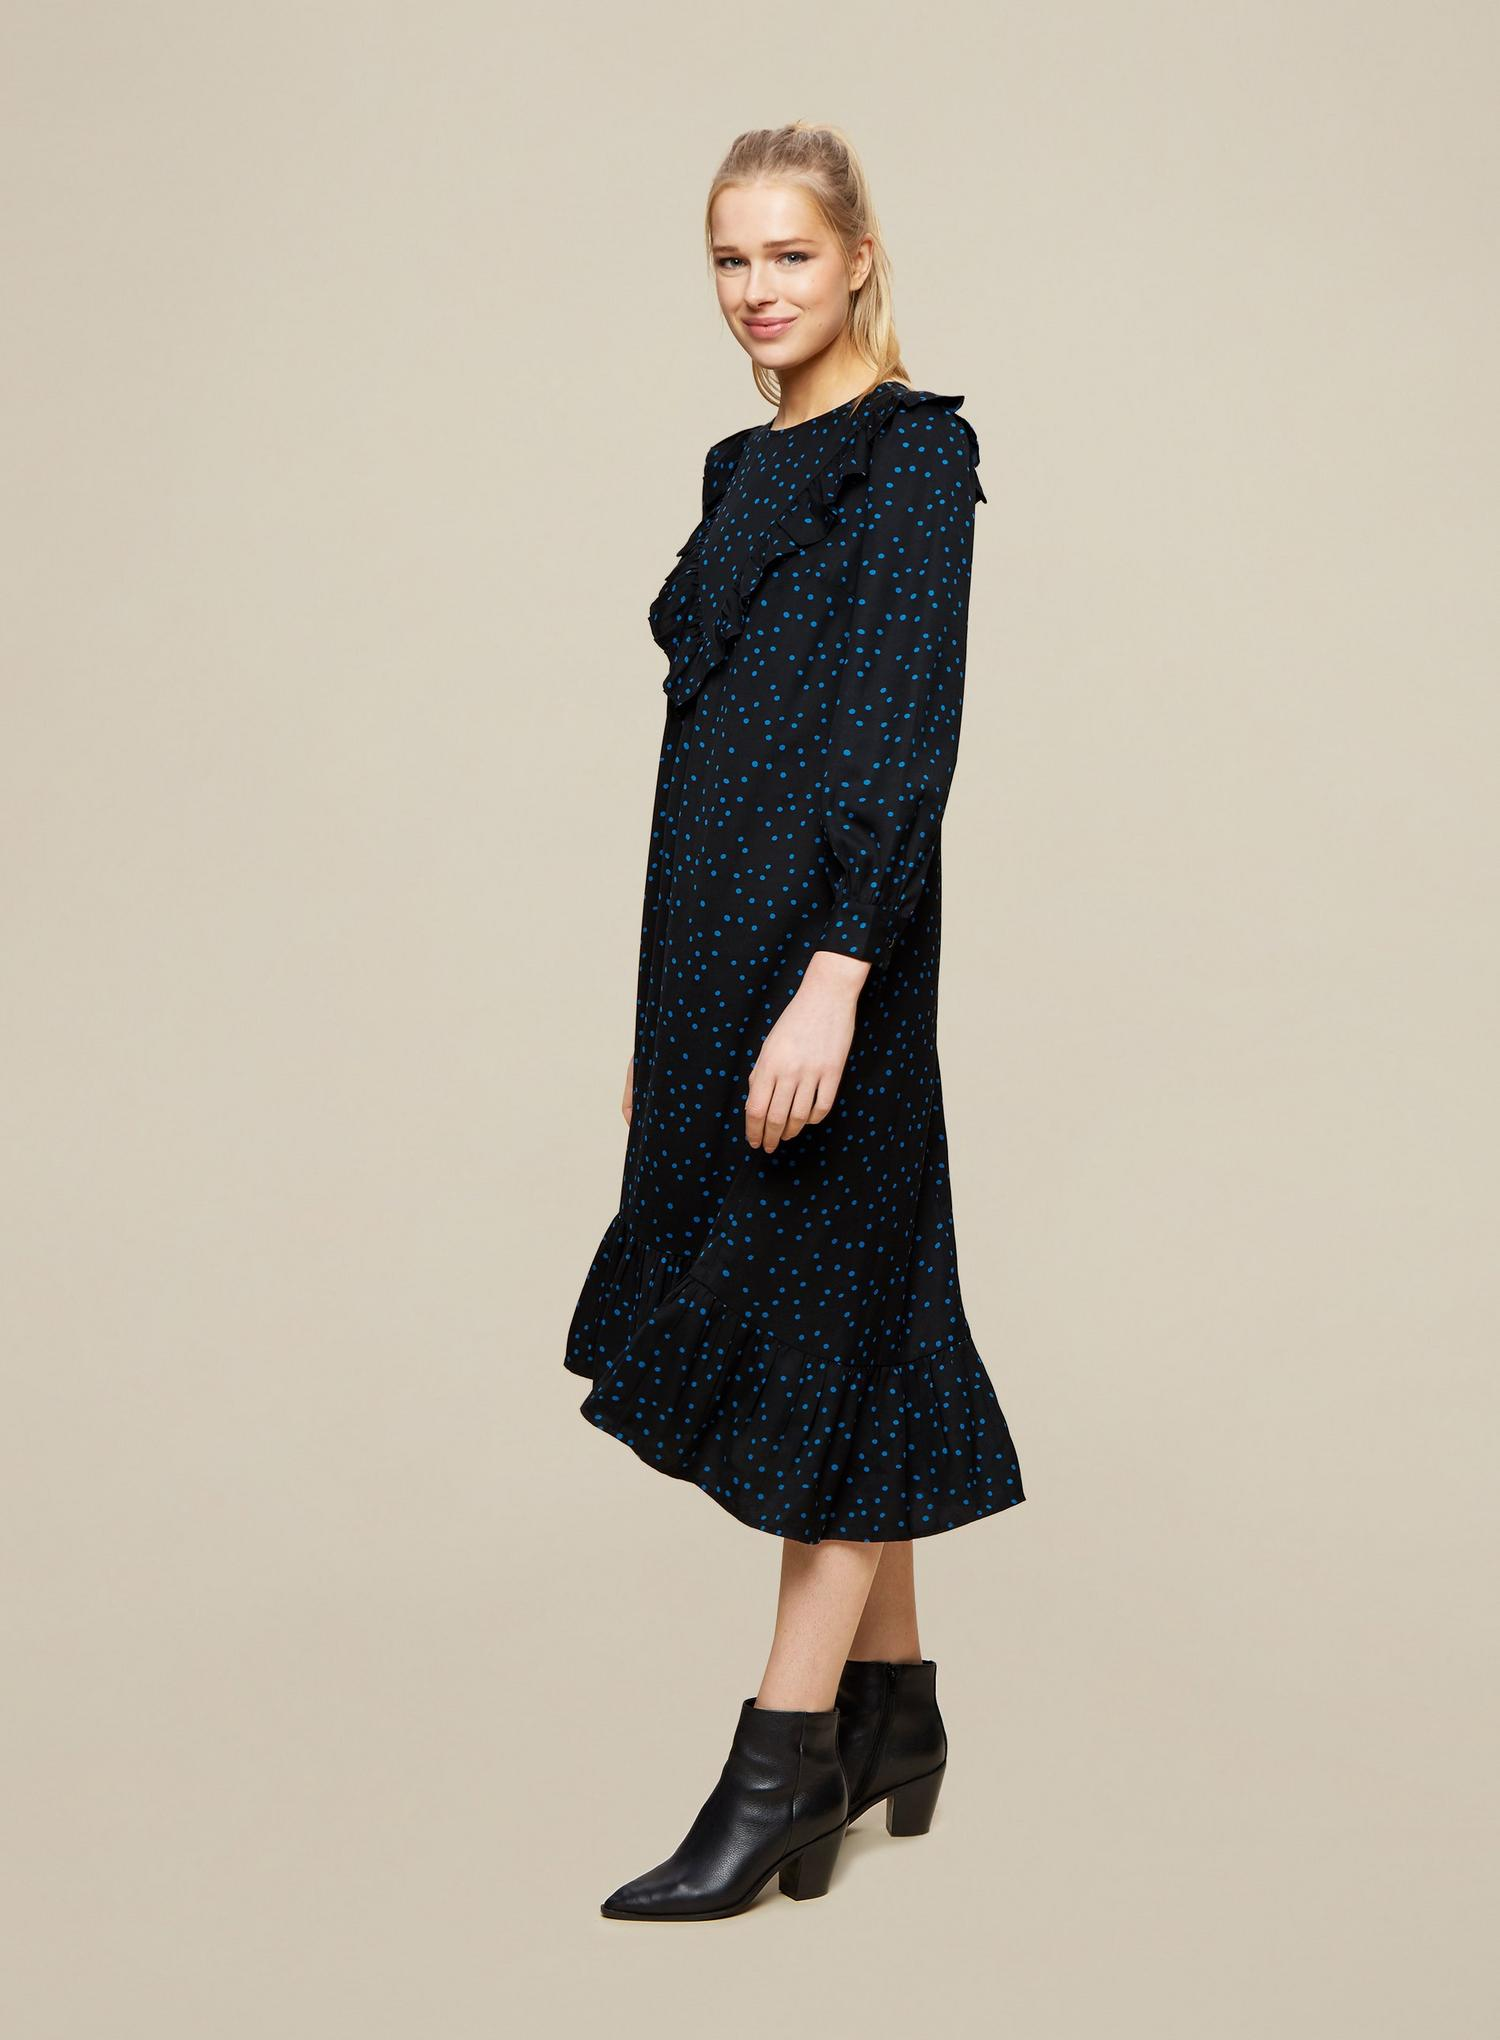 105 Black Spot print Frill Midi Dress image number 3